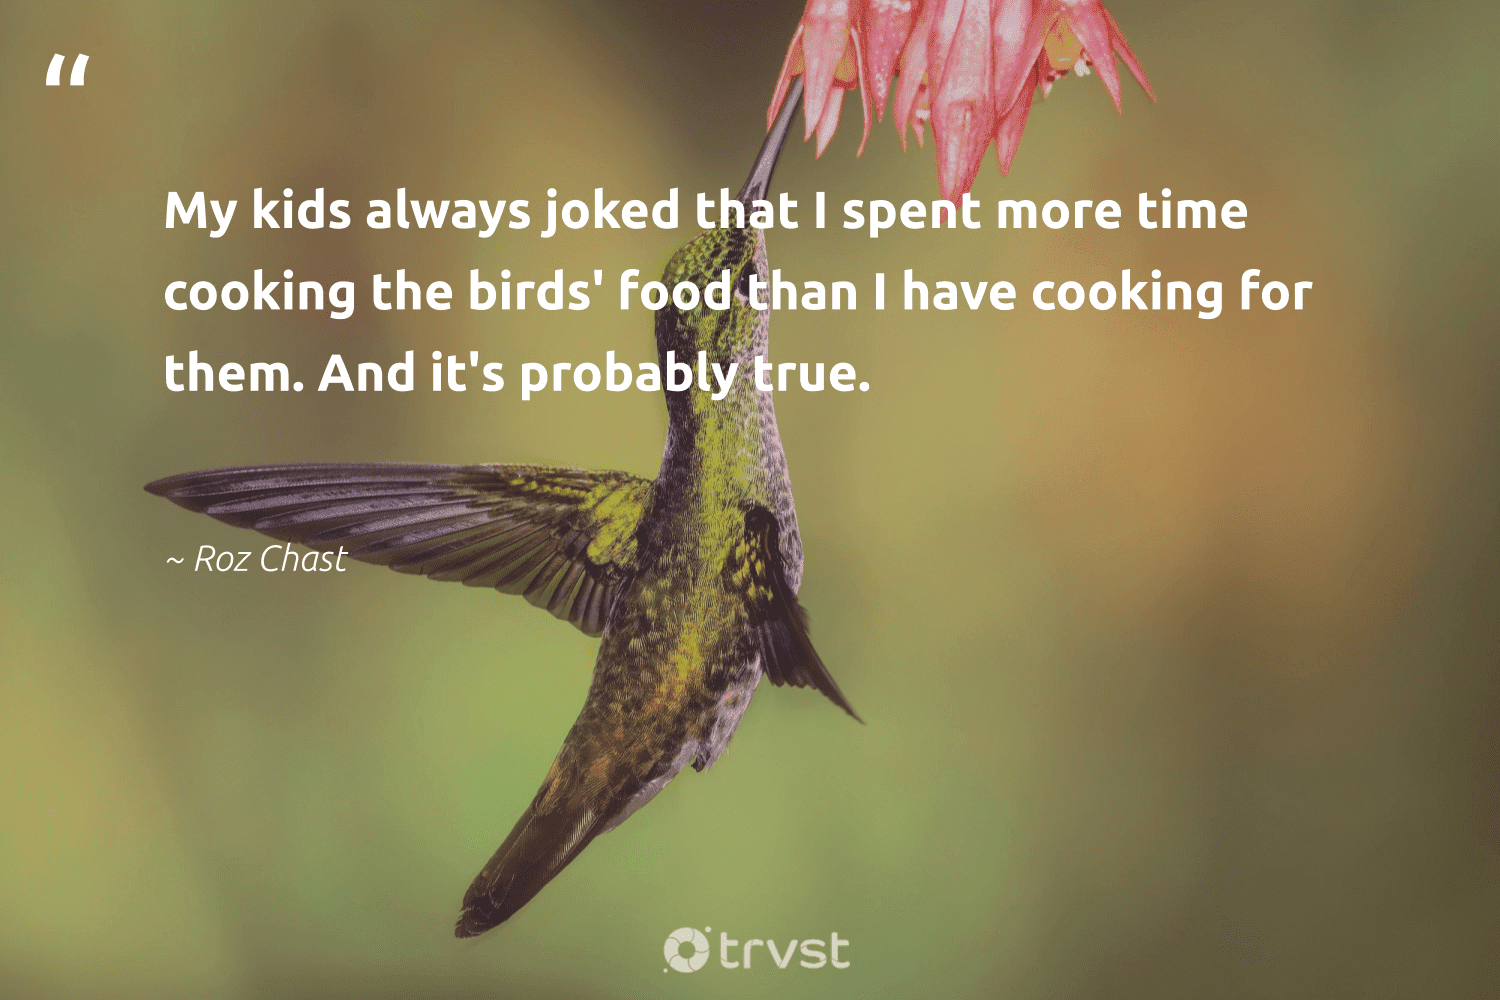 """""""My kids always joked that I spent more time cooking the birds' food than I have cooking for them. And it's probably true.""""  - Roz Chast #trvst #quotes #birds #food #bird #forscience #takeaction #geology #beinspired #nature #socialimpact #biology"""